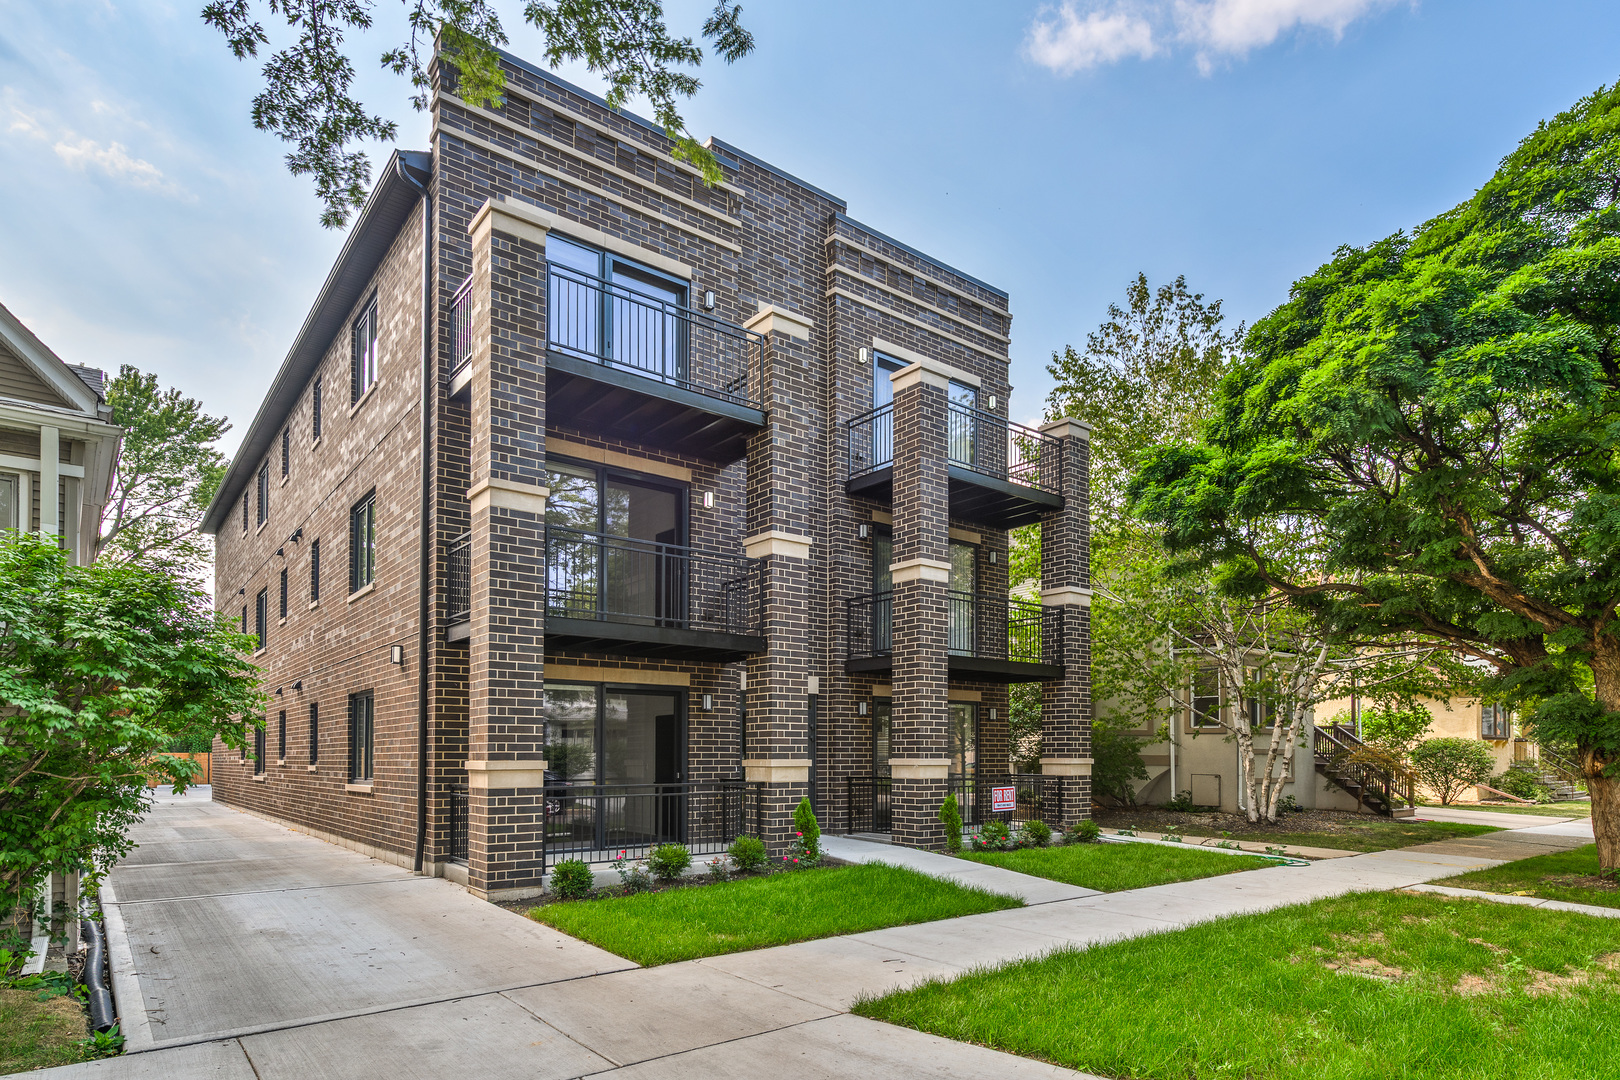 2-Bedroom House In Irving Park